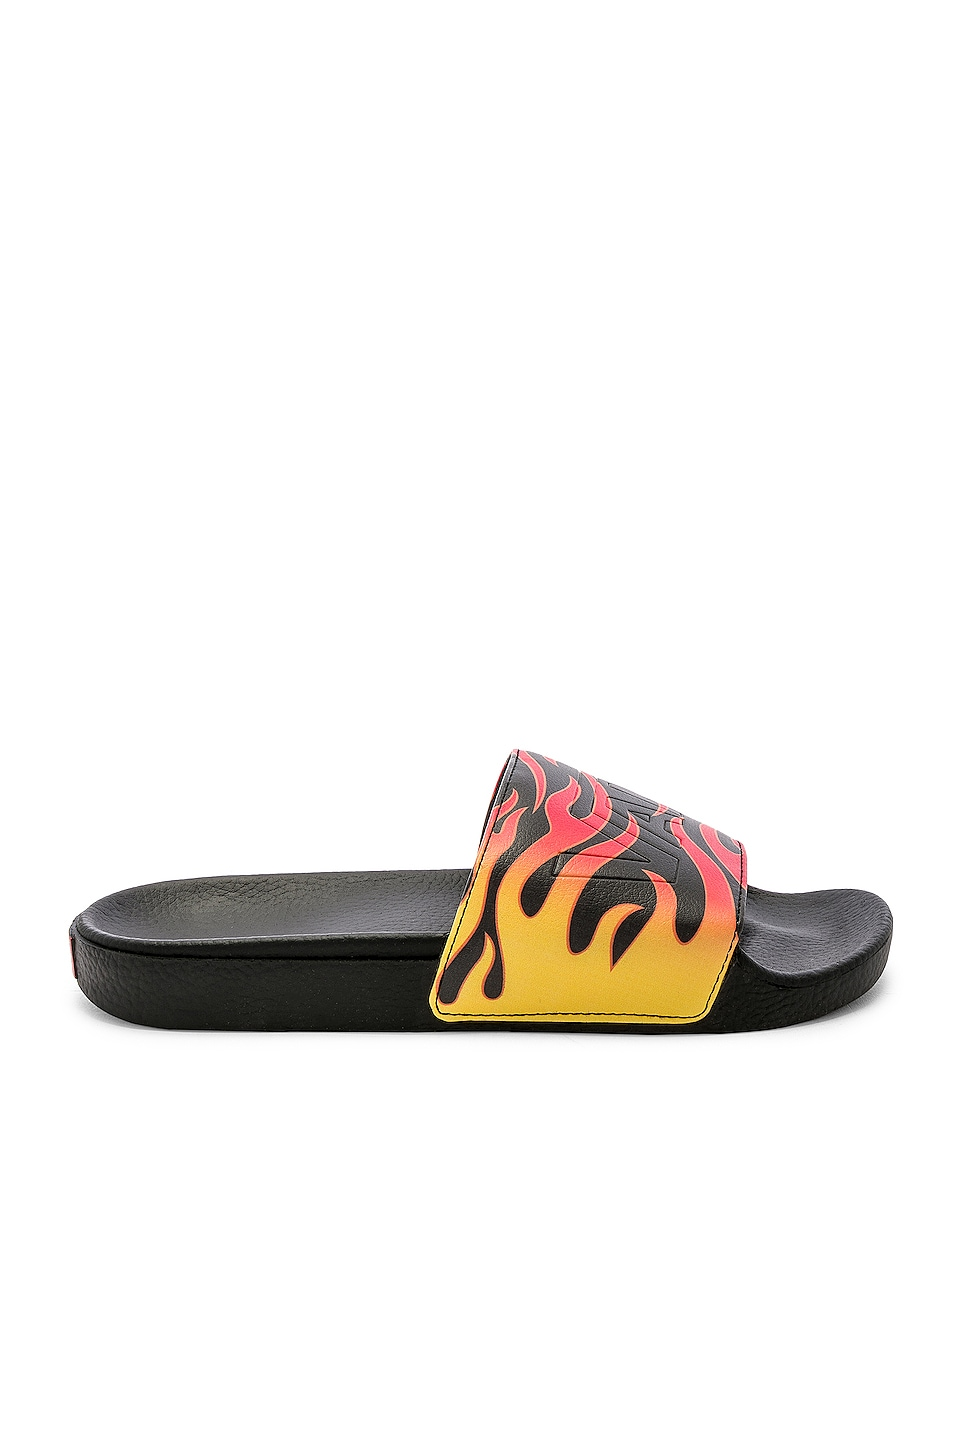 Vans Slide On Flame in Black